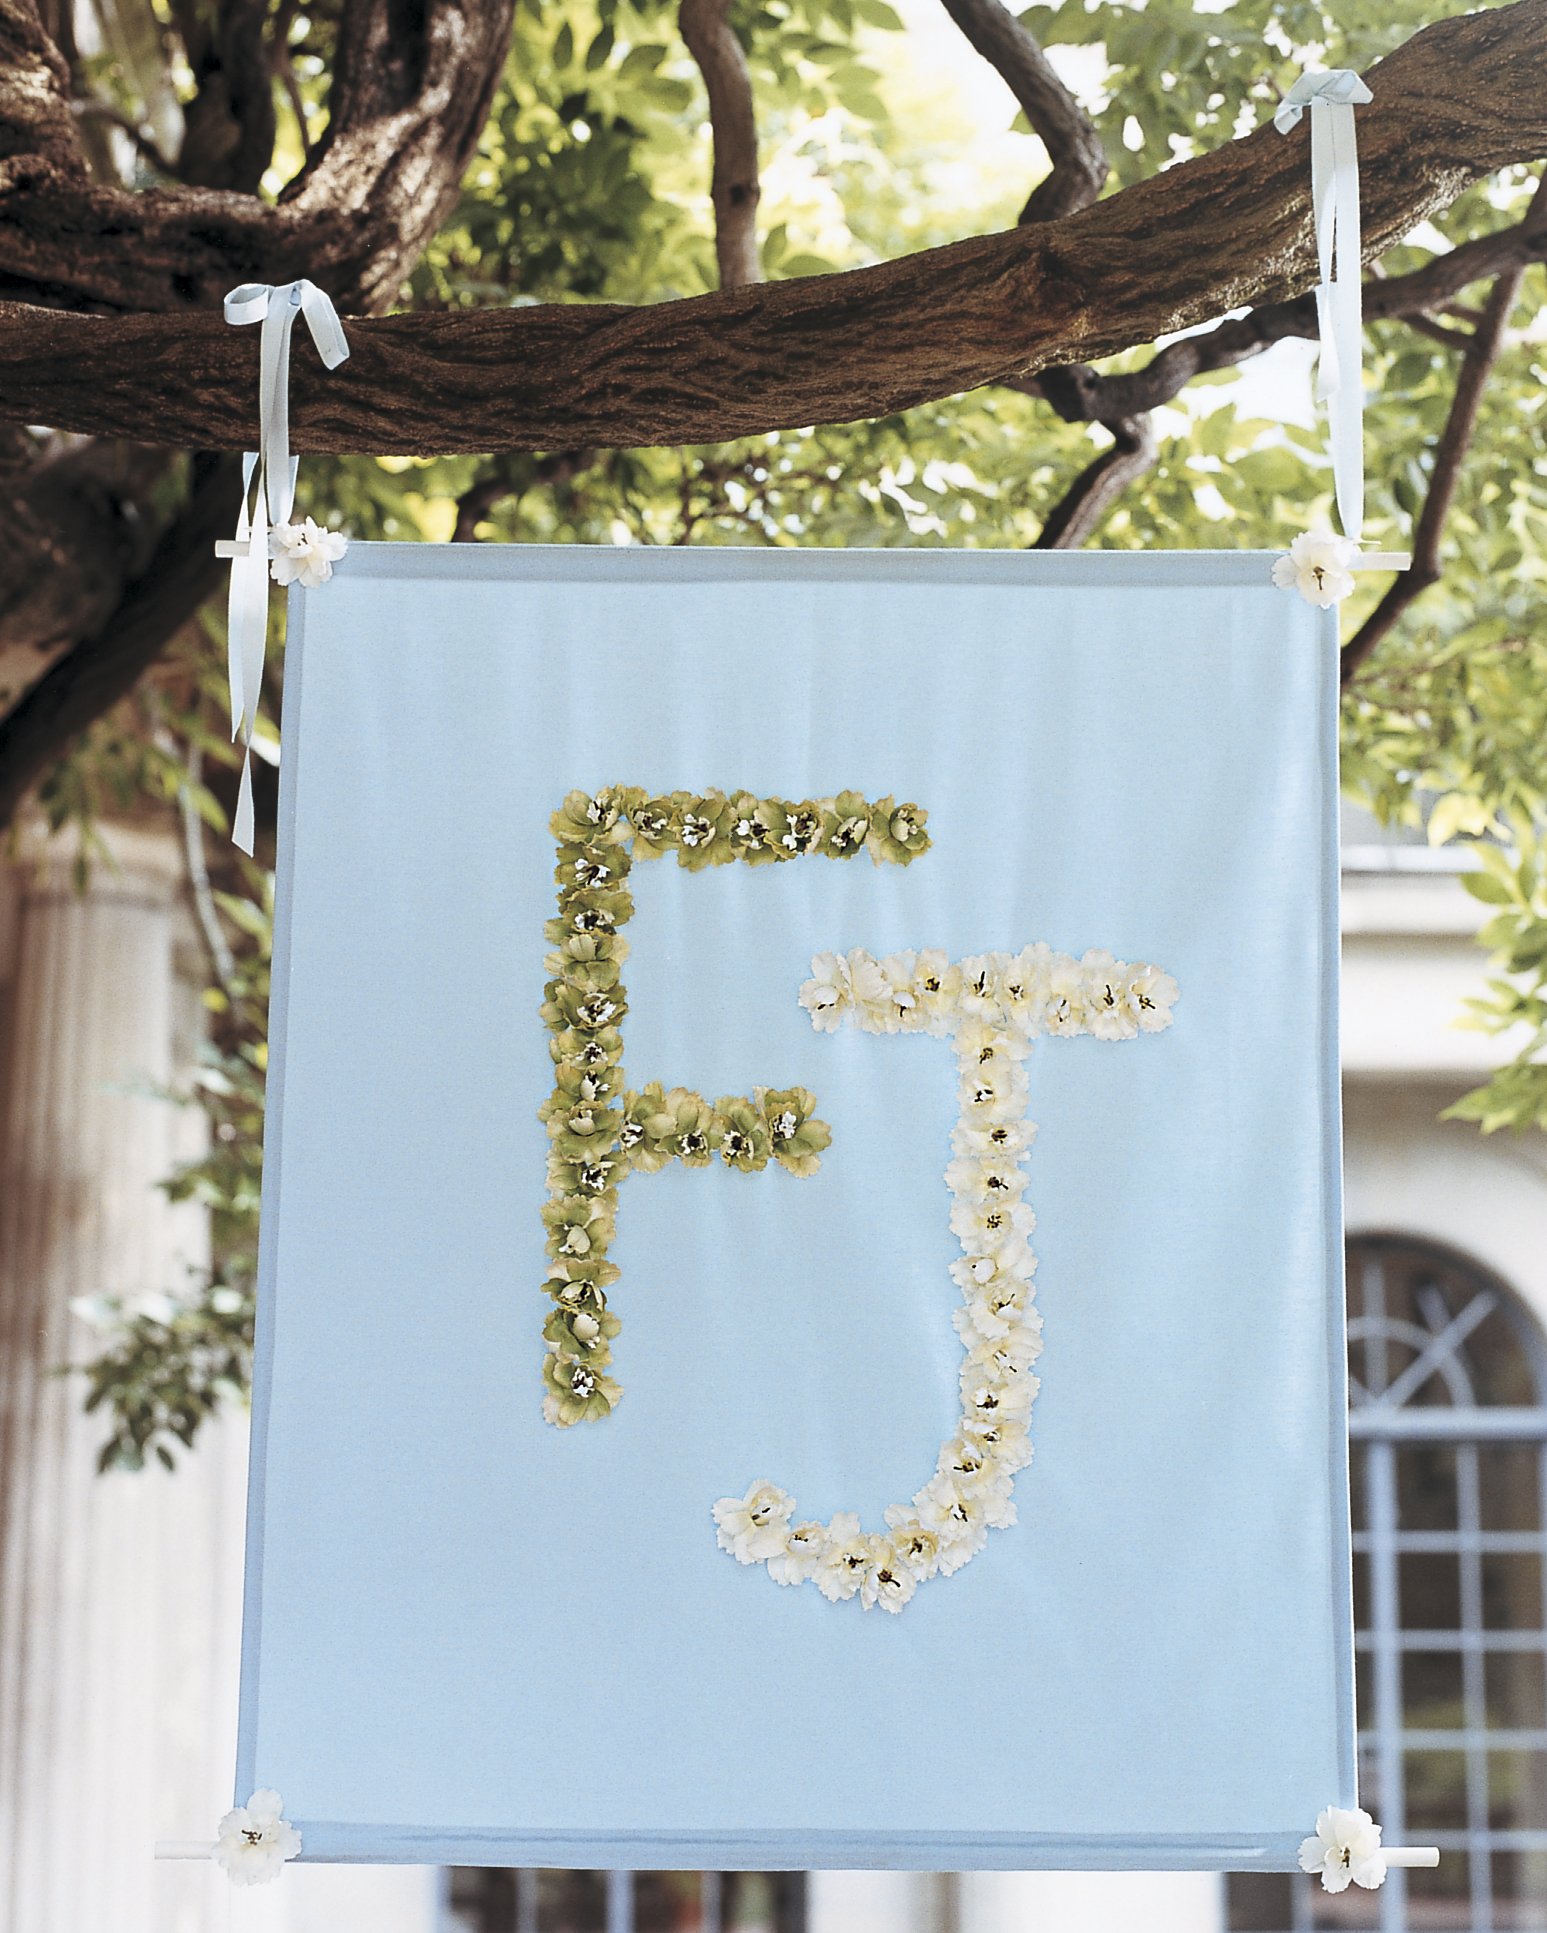 Simple Wedding Car Decoration Ideas: Outdoor Wedding Decorations That Are Easy To DIY